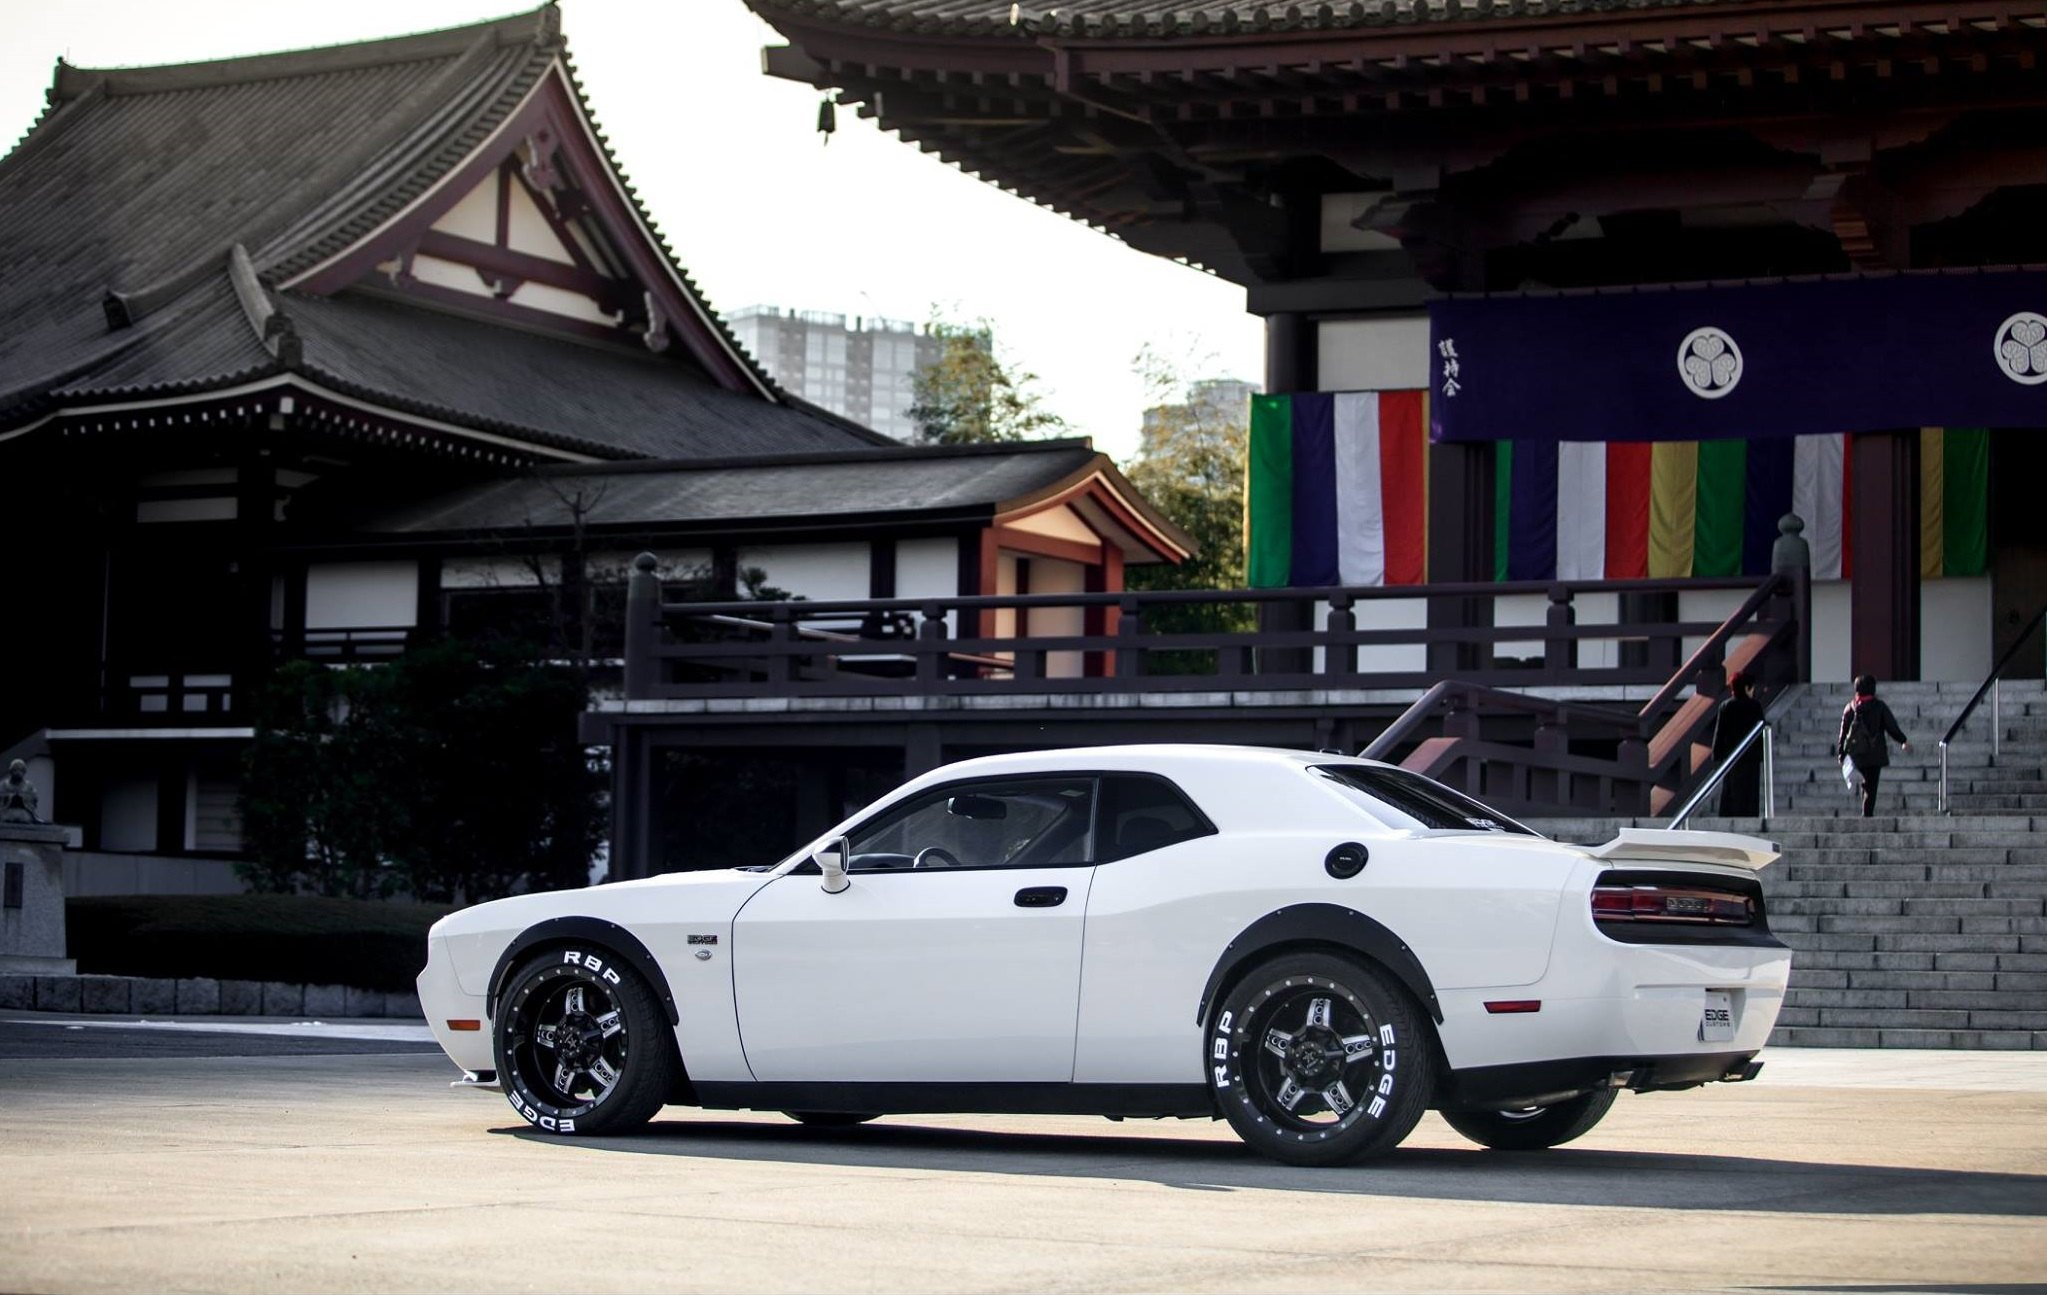 Dodge Chellenger with RBP Truck Wheels and Fender Flares